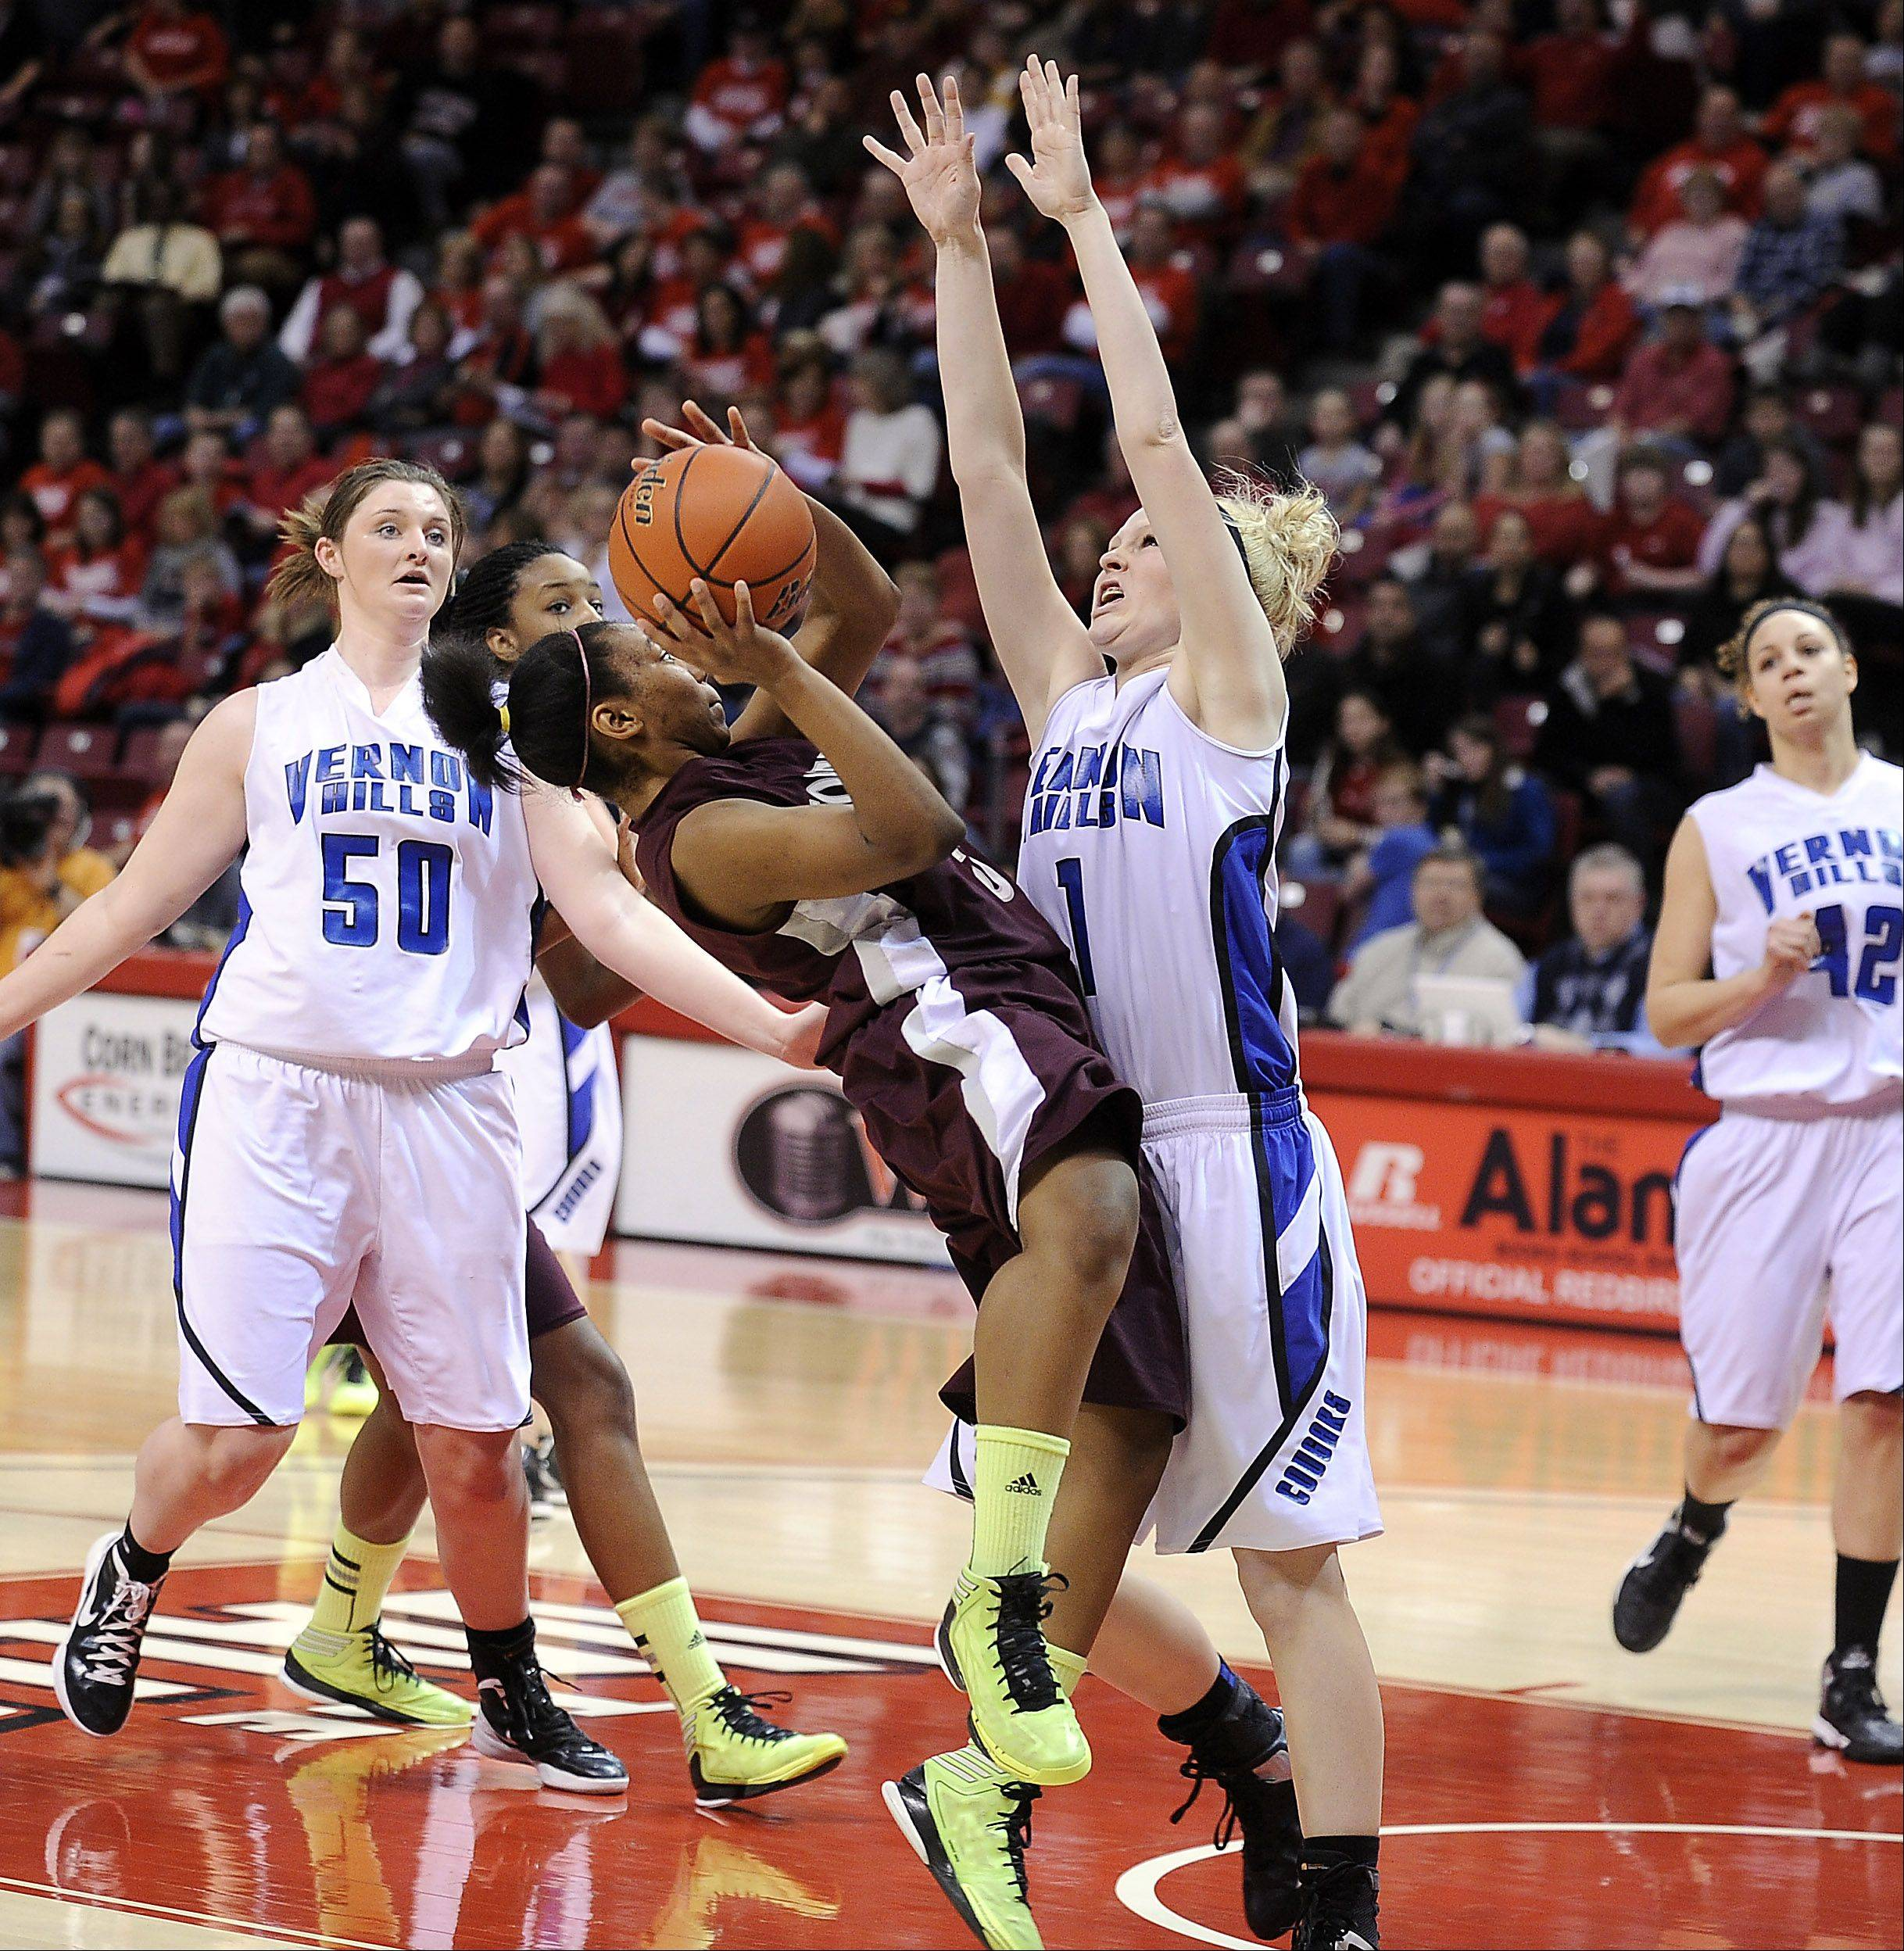 Vernon Hills Sydney Smith blocks the shot of Montini's Tiara Wallace in the third quarter.